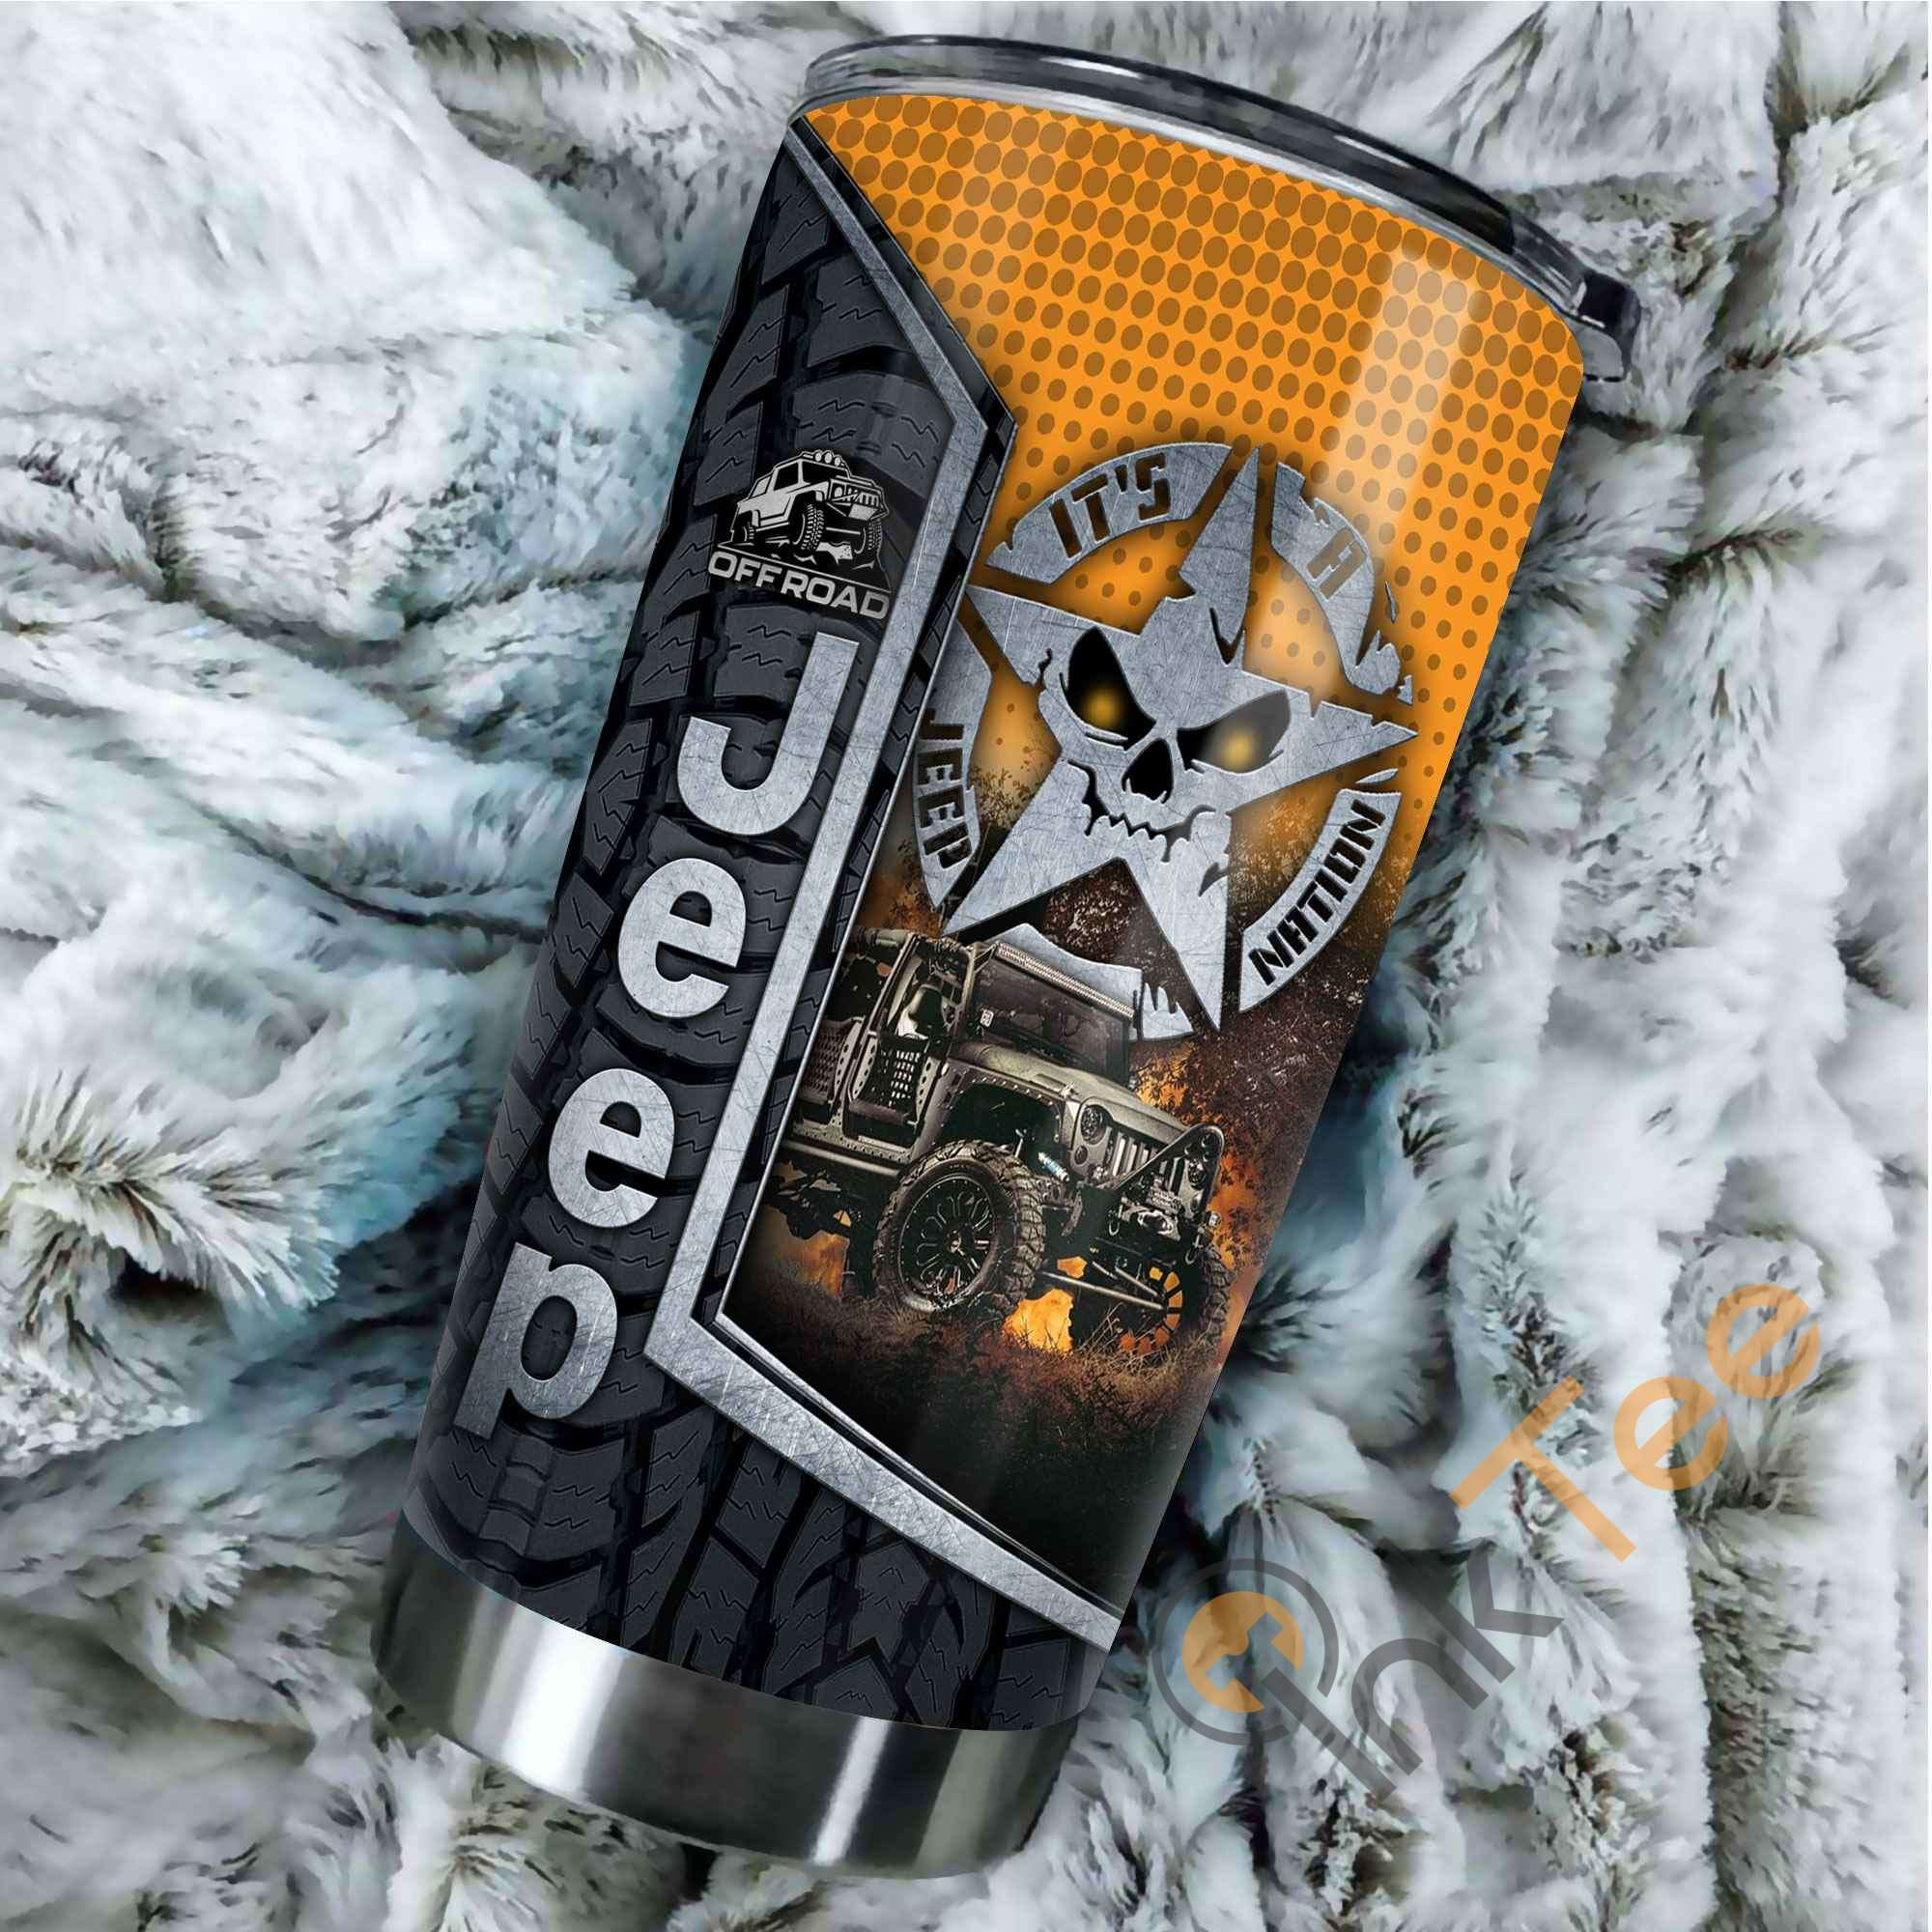 Beautiful Jeep Stainless Steel Tumbler